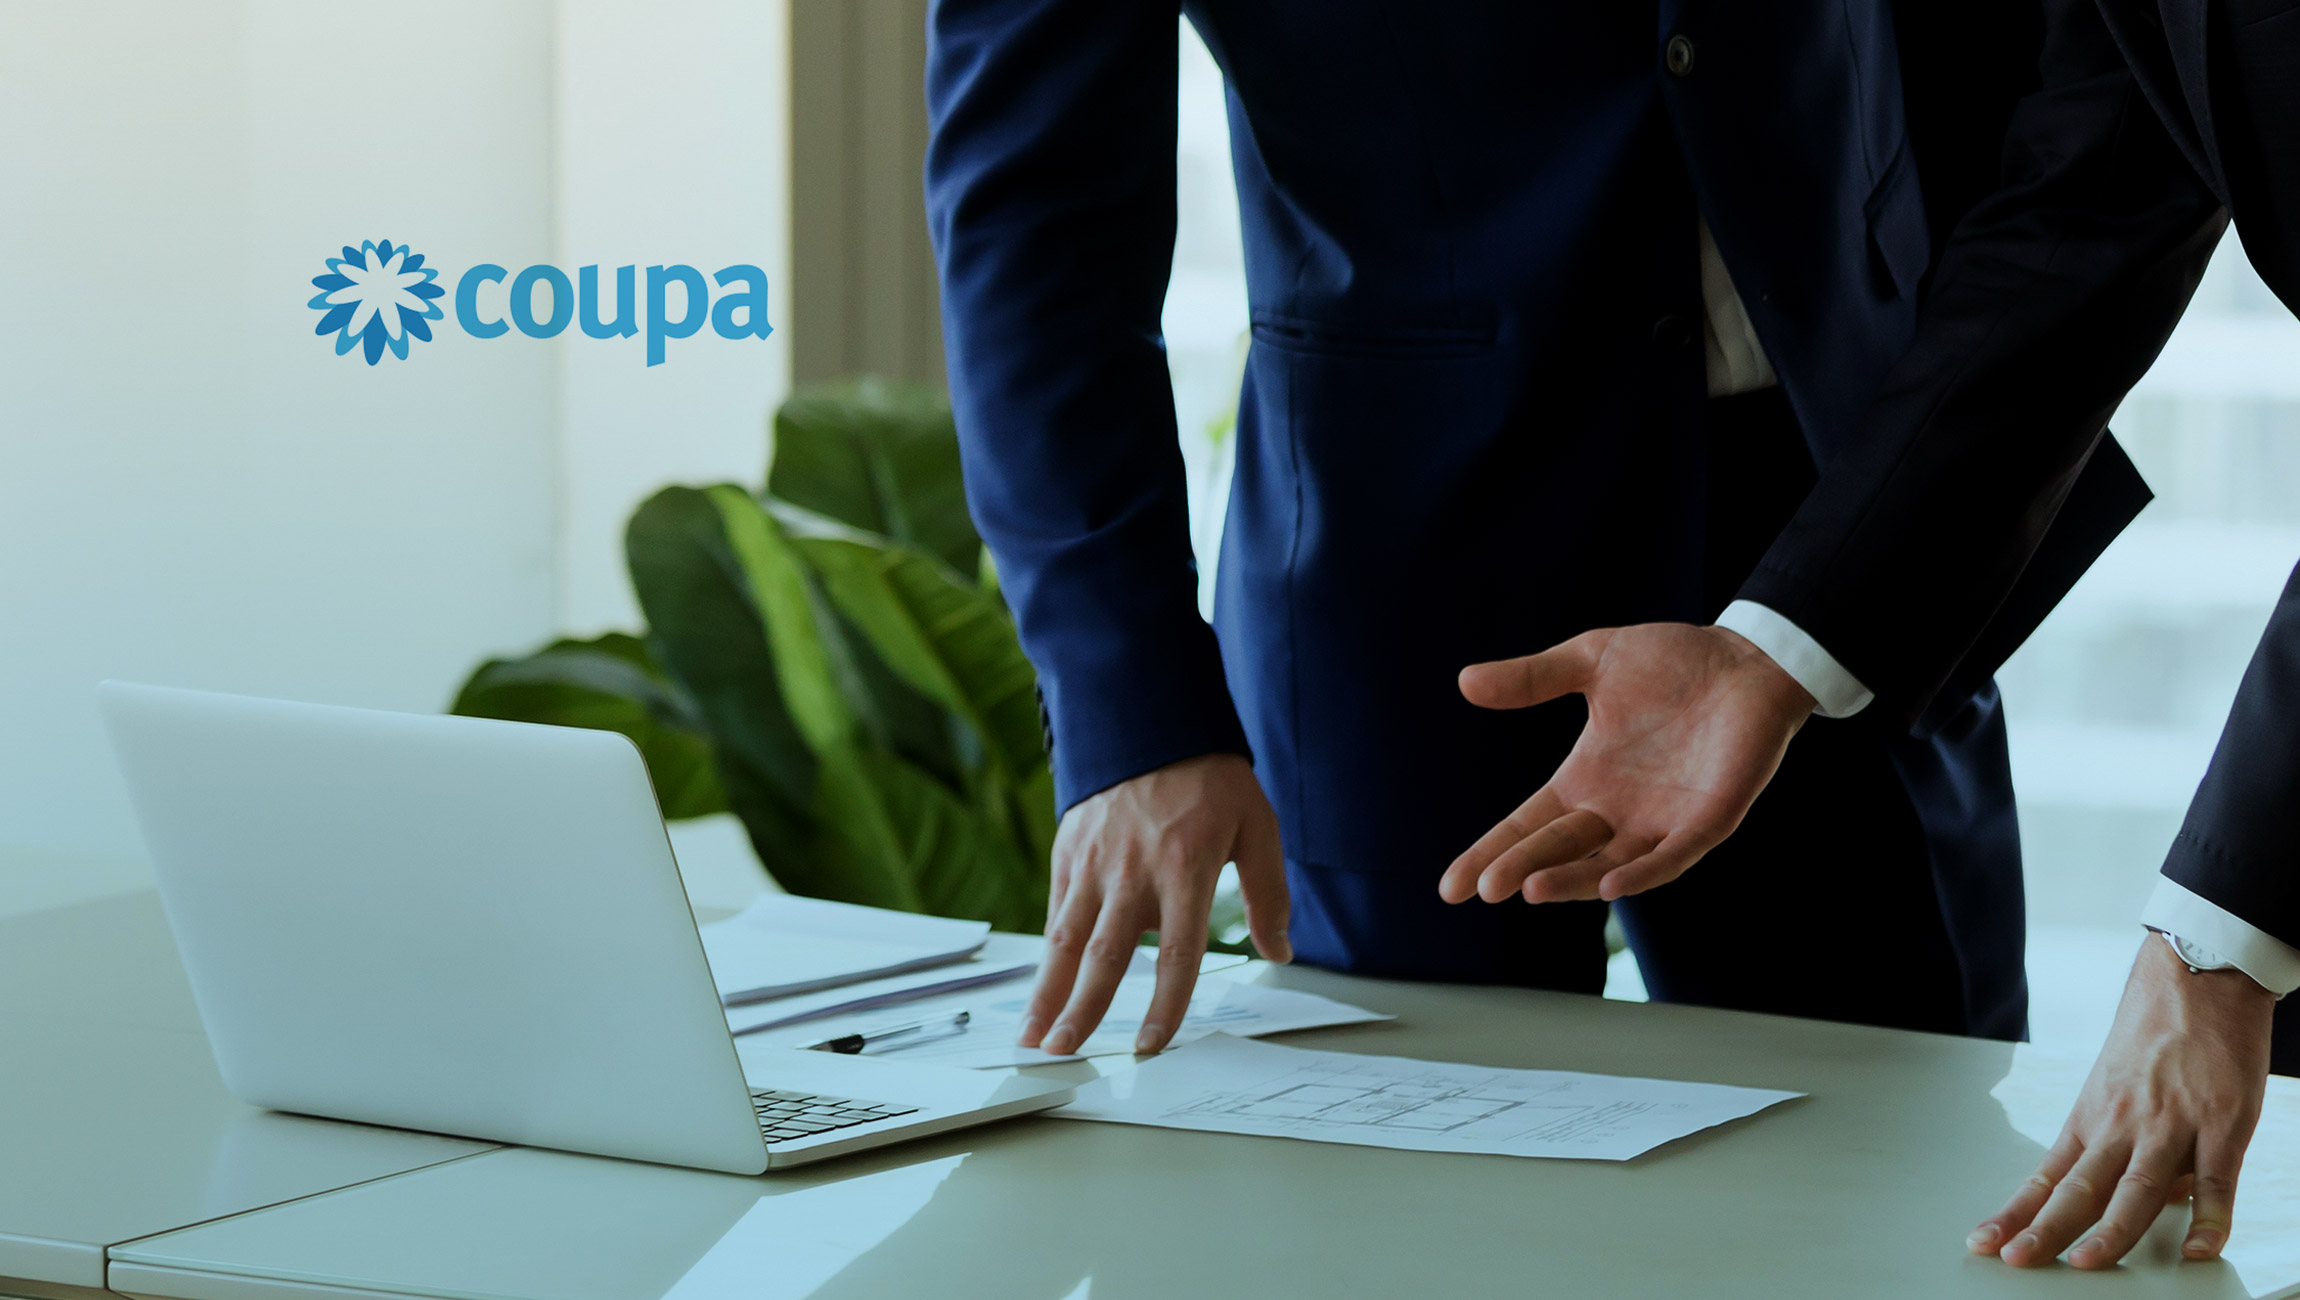 Coupa Completes Acquisition of Contract Lifecycle Management Leader Exari